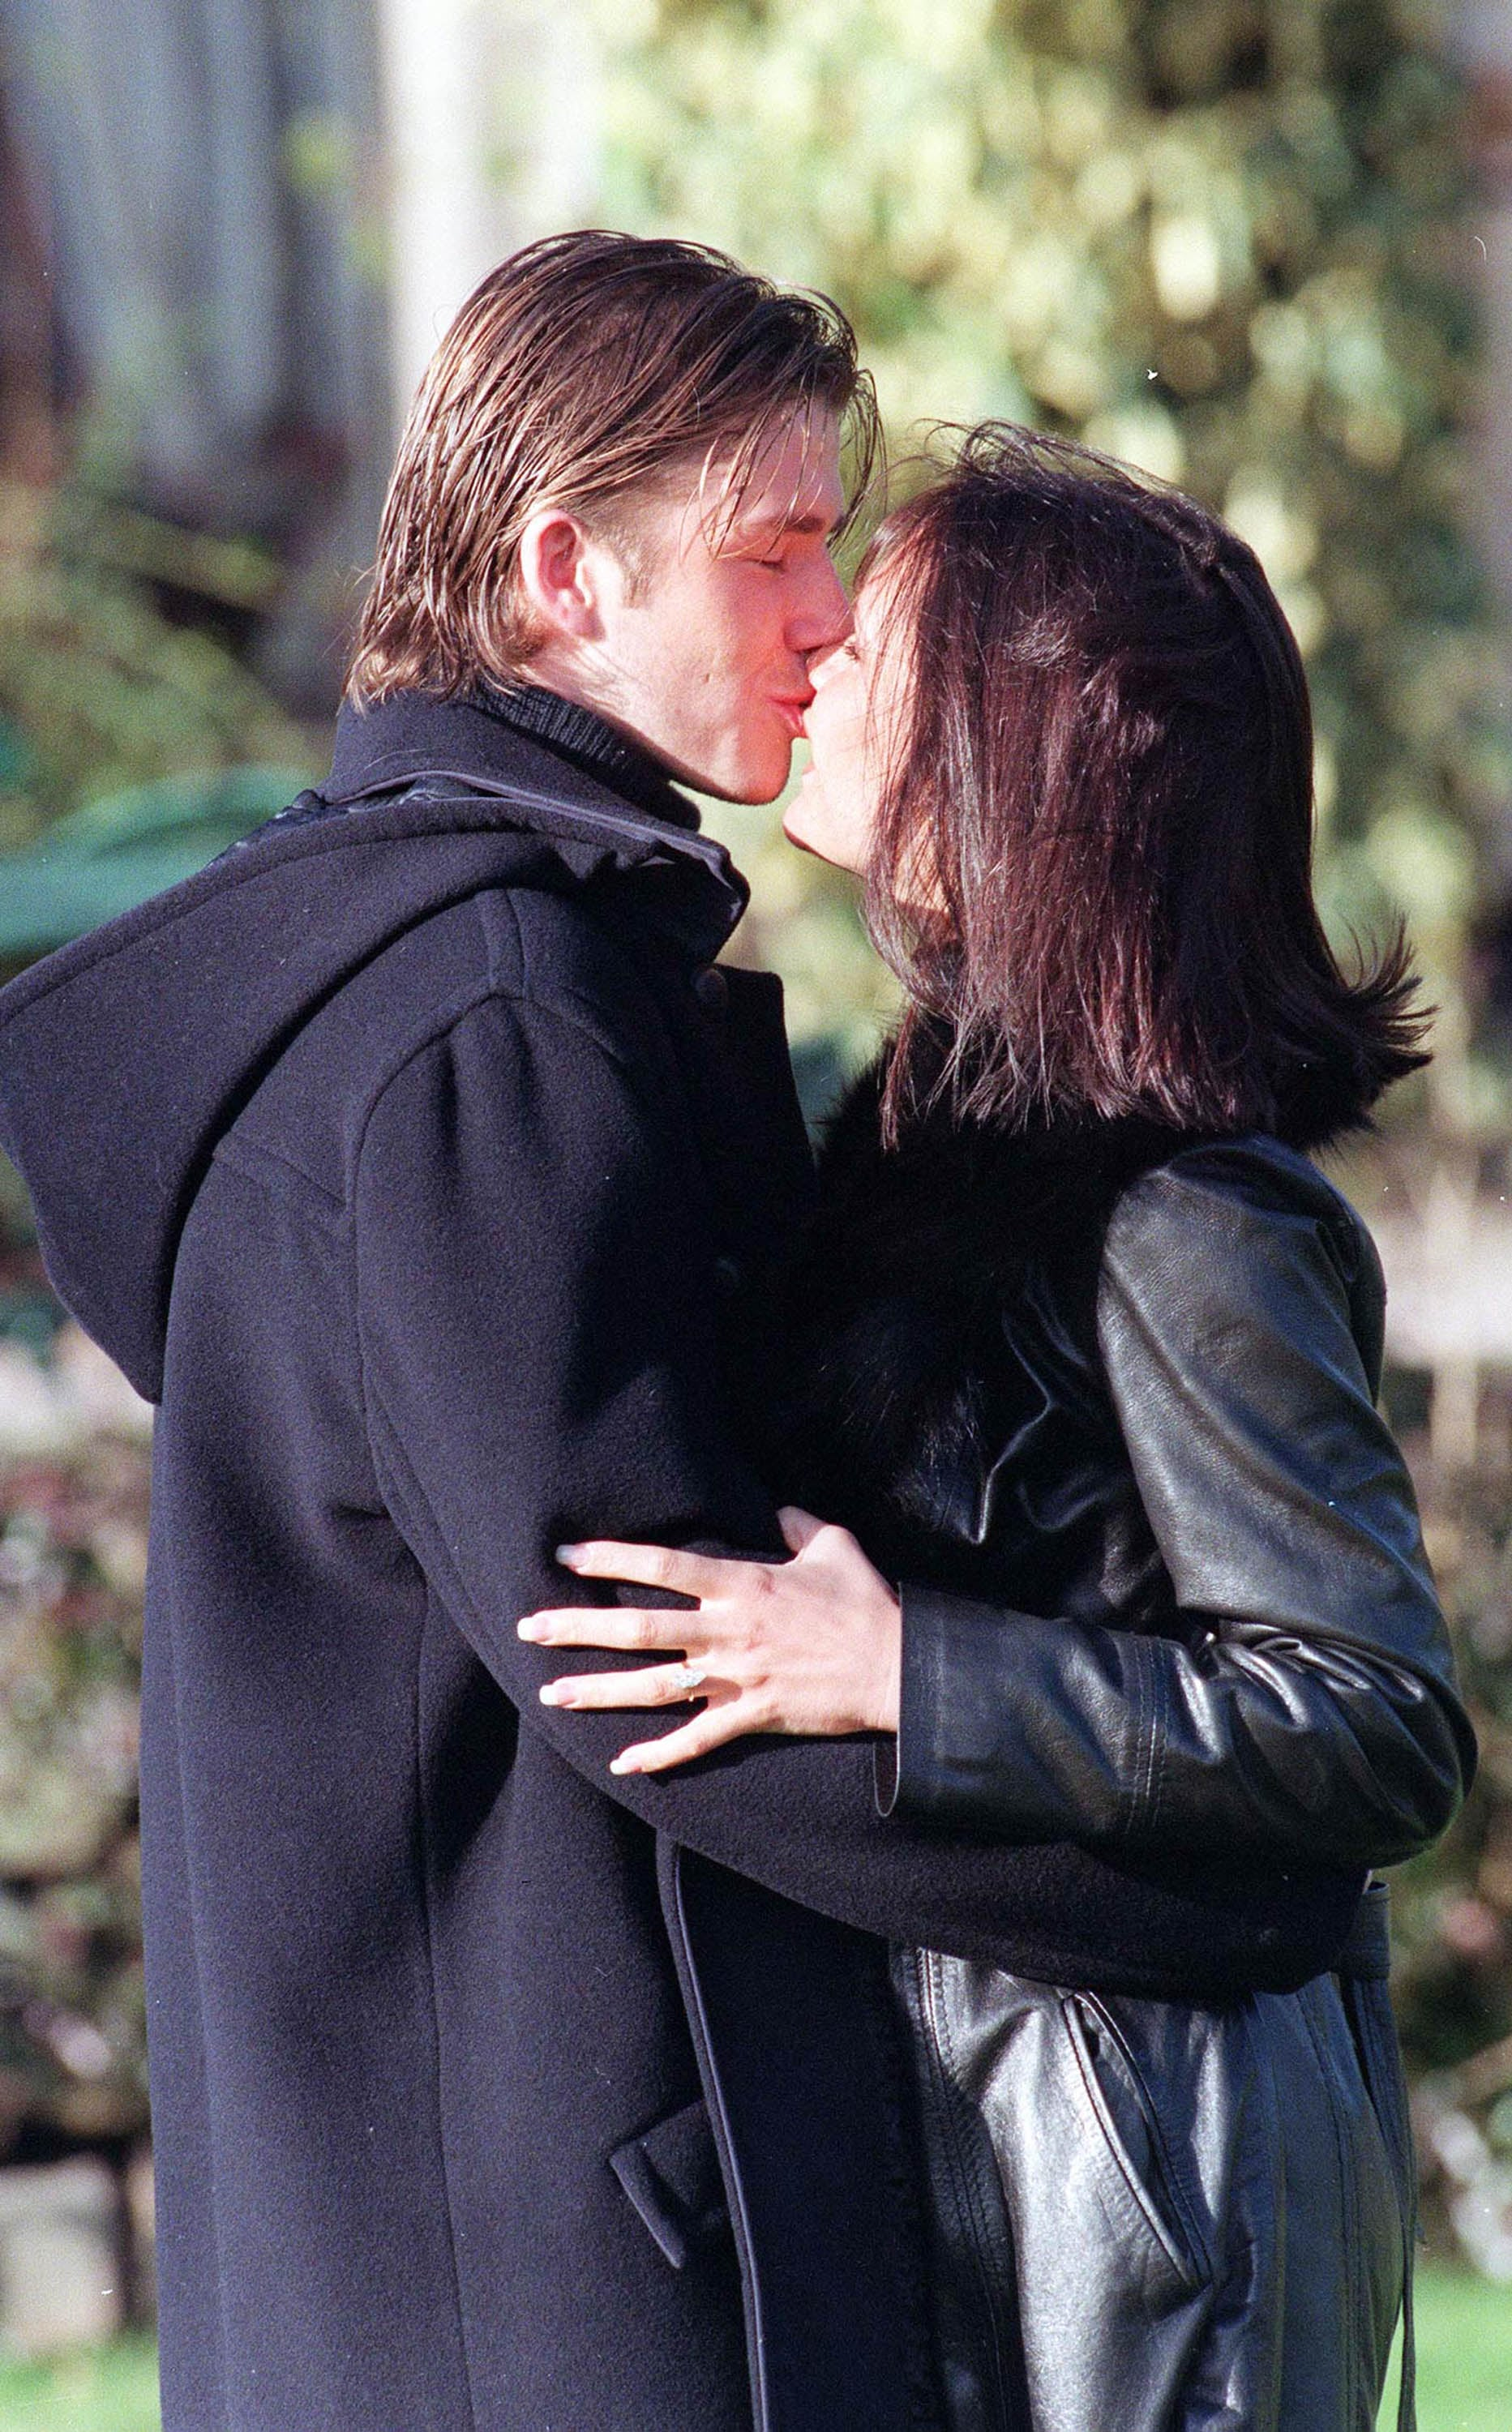 David and Victoria Beckham embraced outside of their Chester, UK, hotel after announcing their engagement in January 1998.